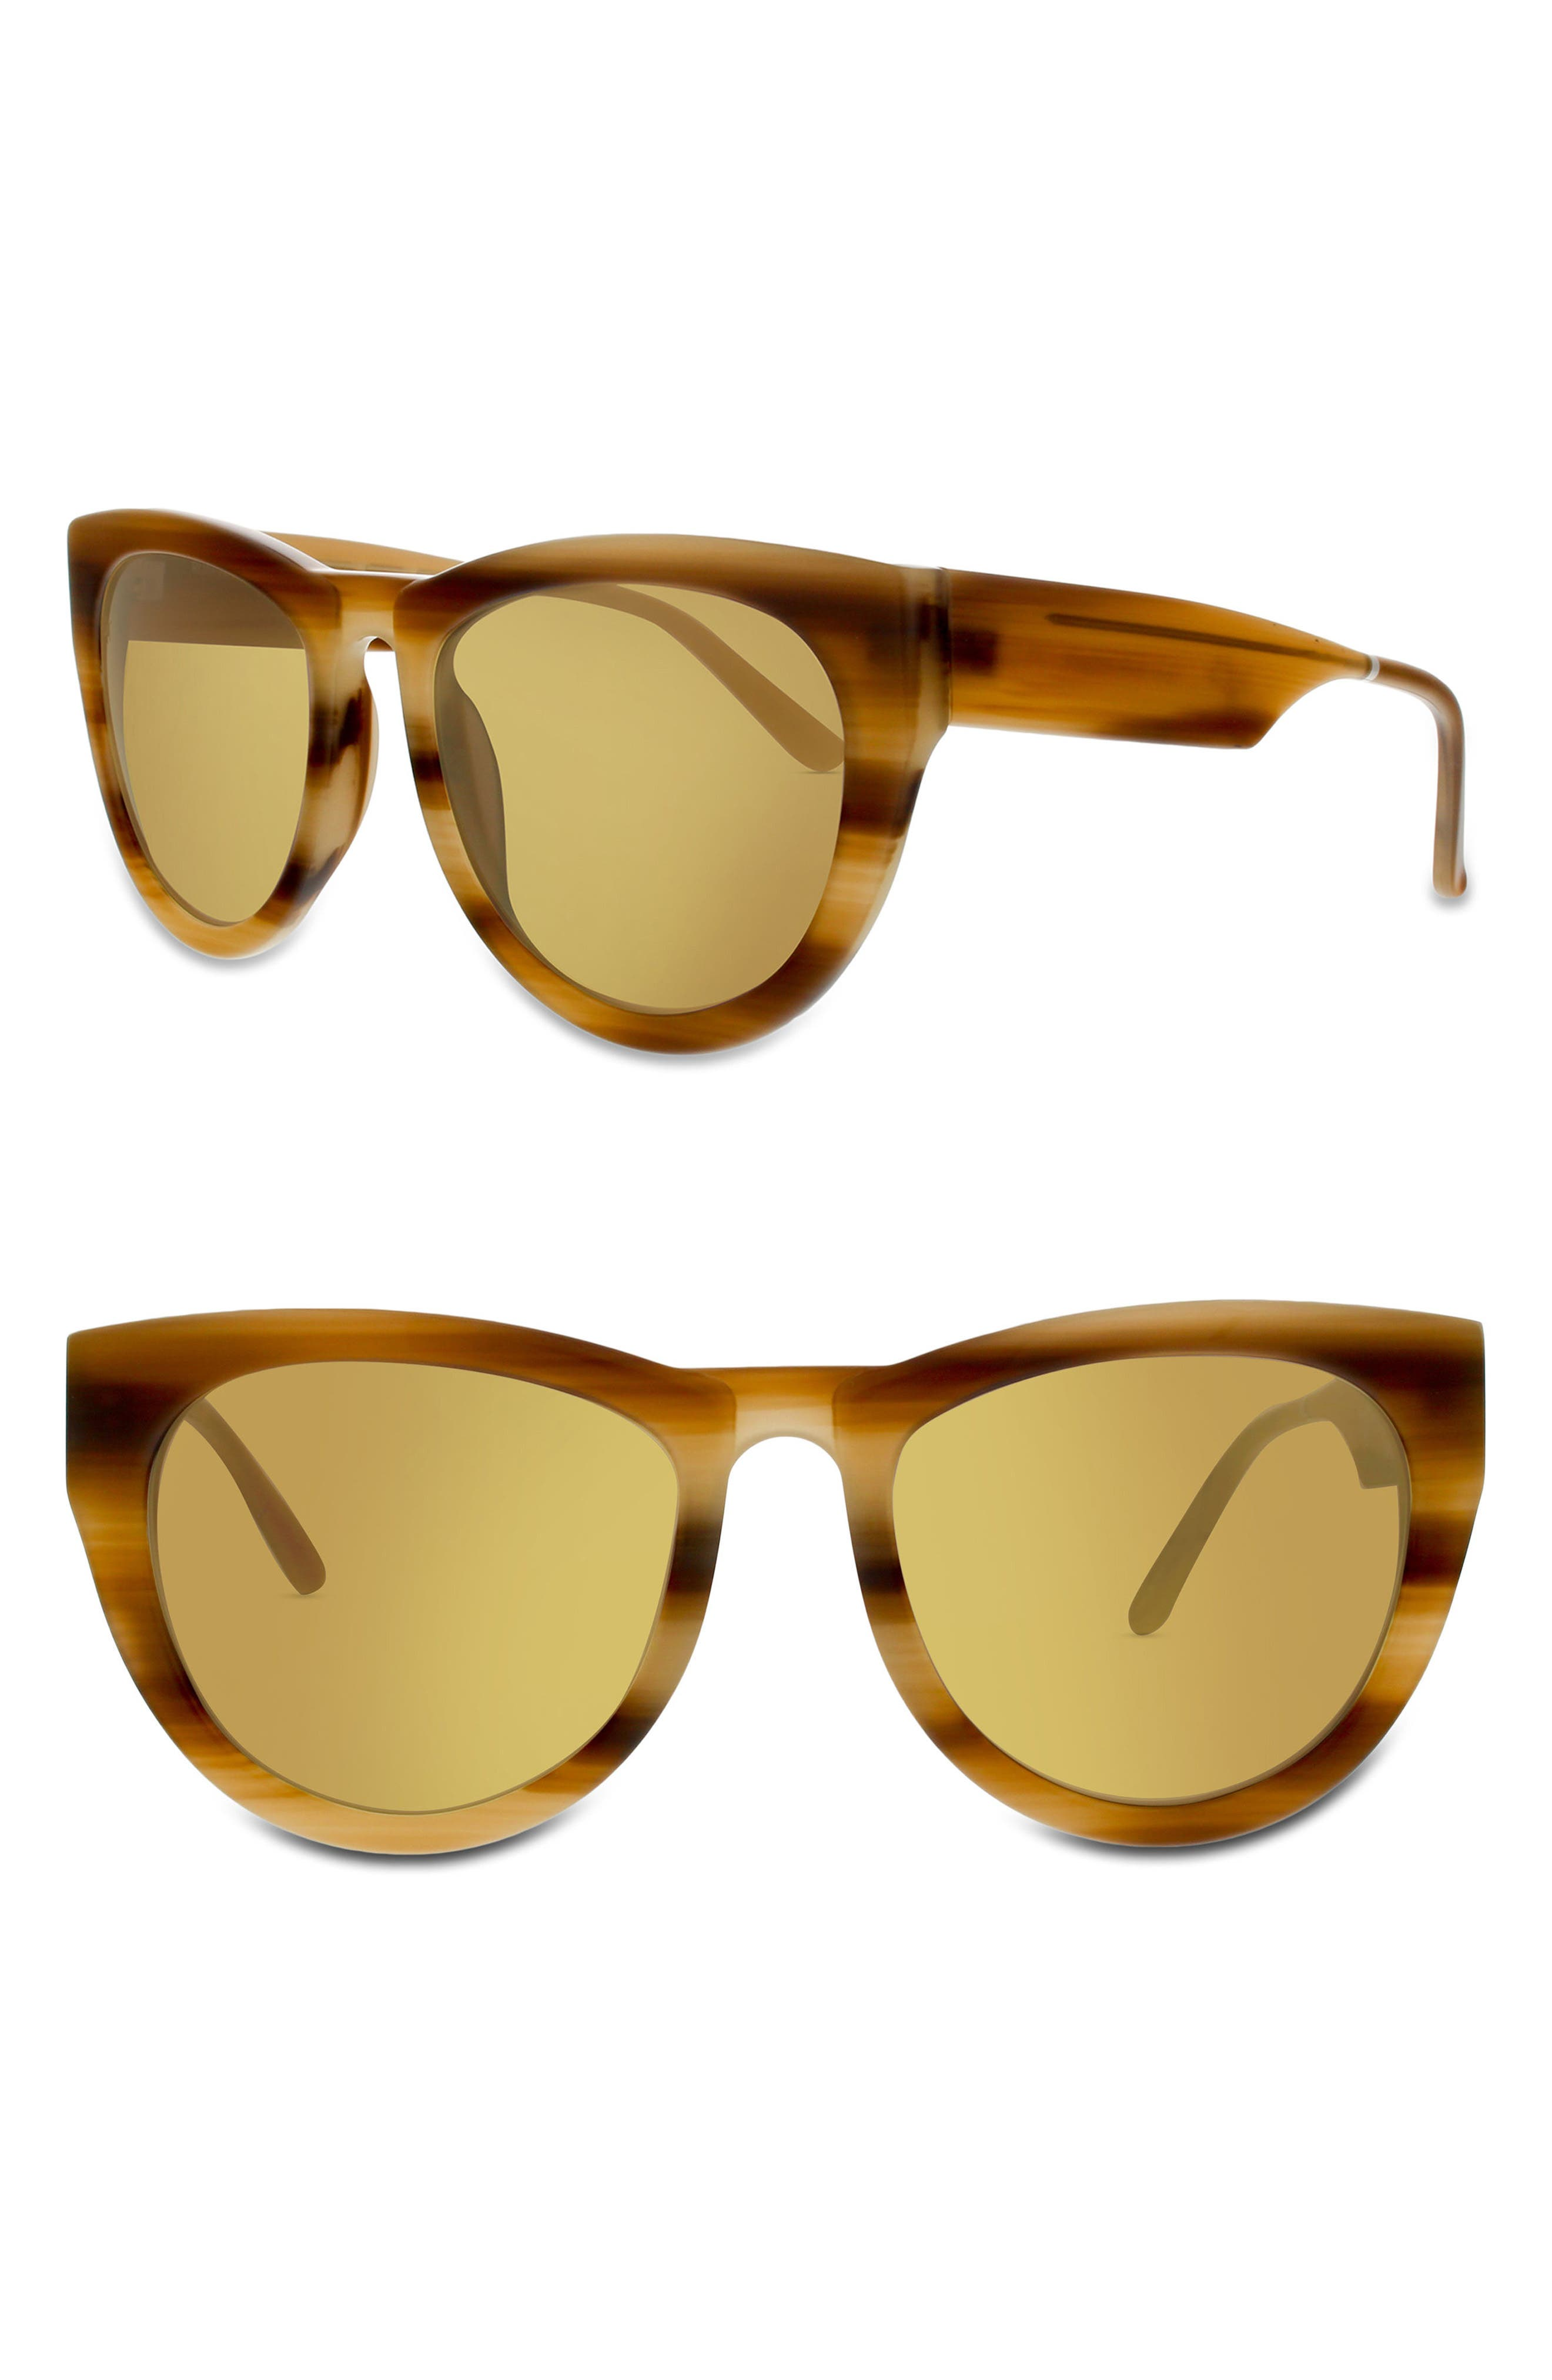 SMOKE X MIRRORS RUNAROUND SUE 60MM CAT EYE SUNGLASSES - MILKY TORTOISE/ GOLD MIRROR